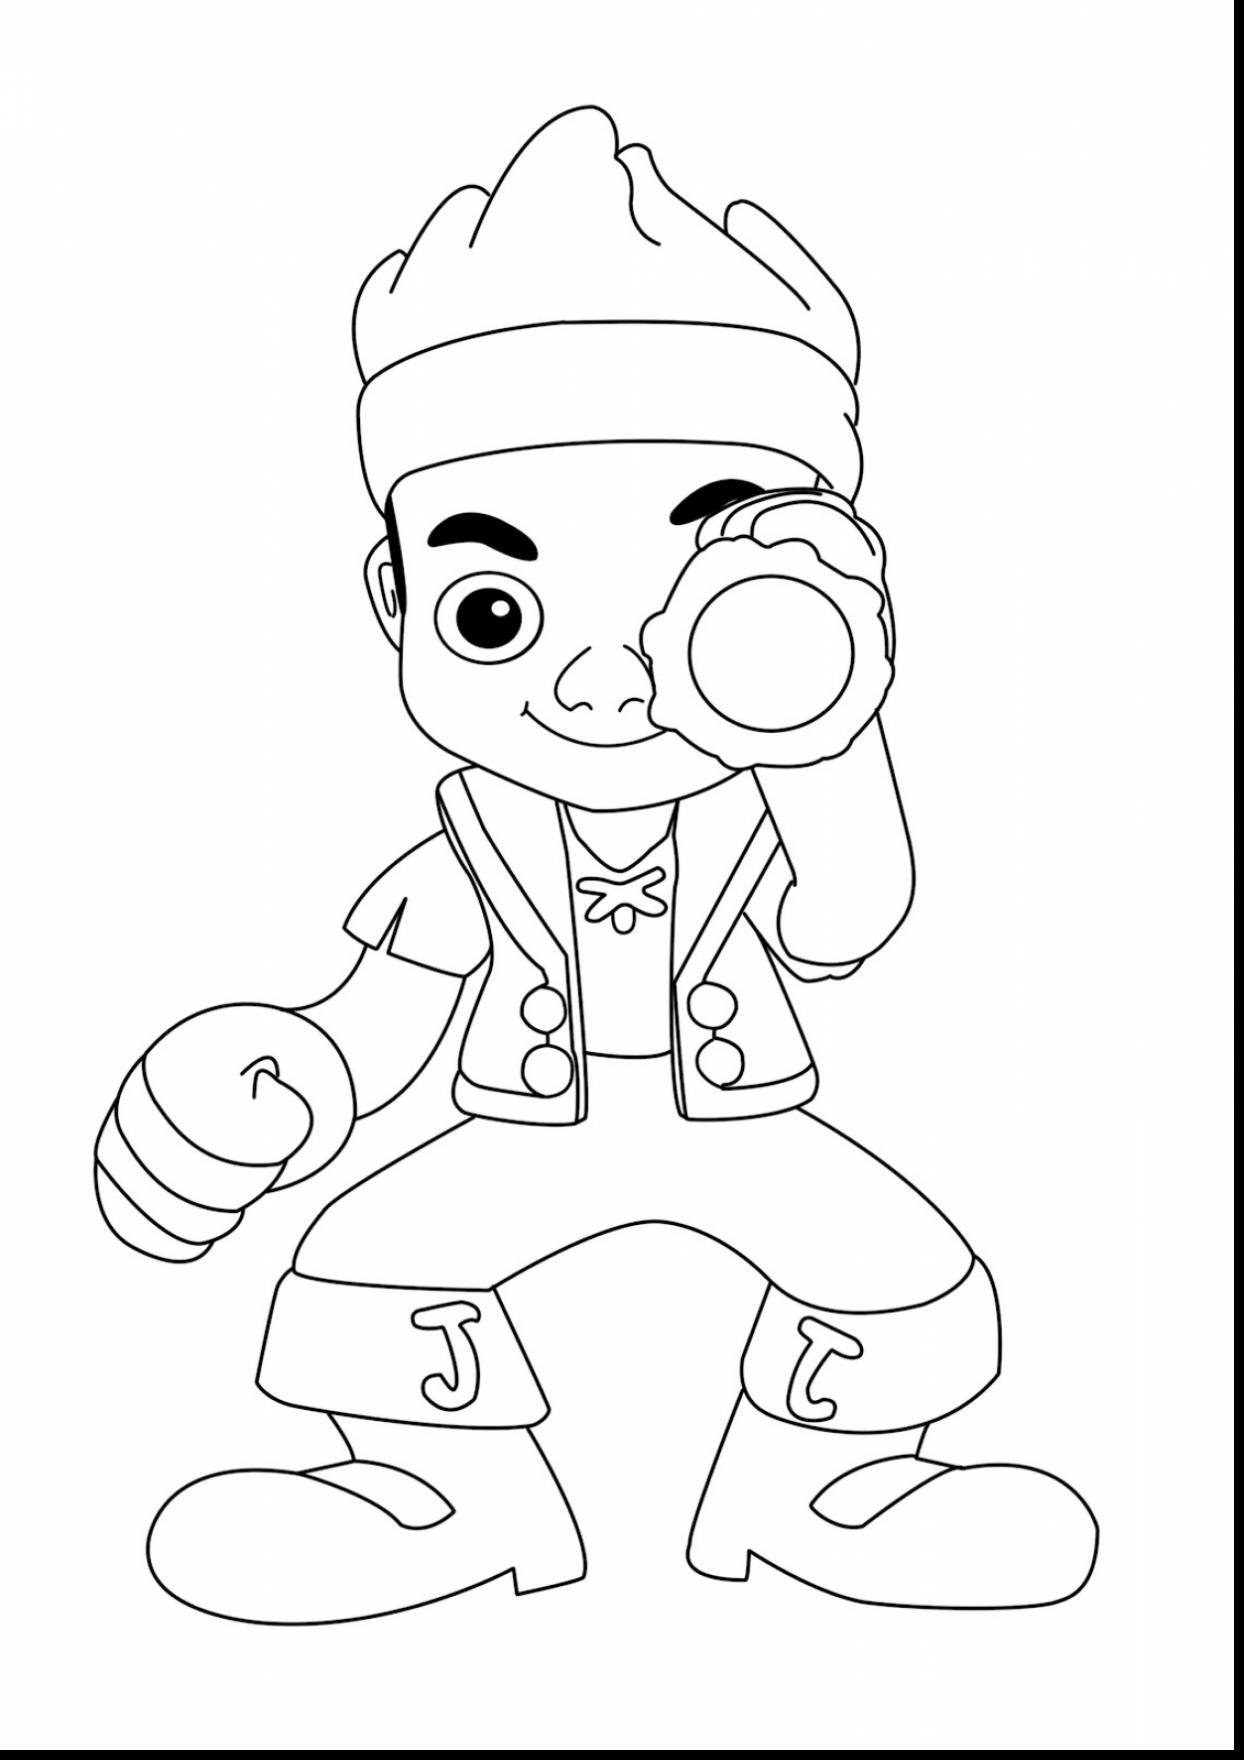 1244x1760 Printable Jake And The Neverland Pirates Coloring Pages